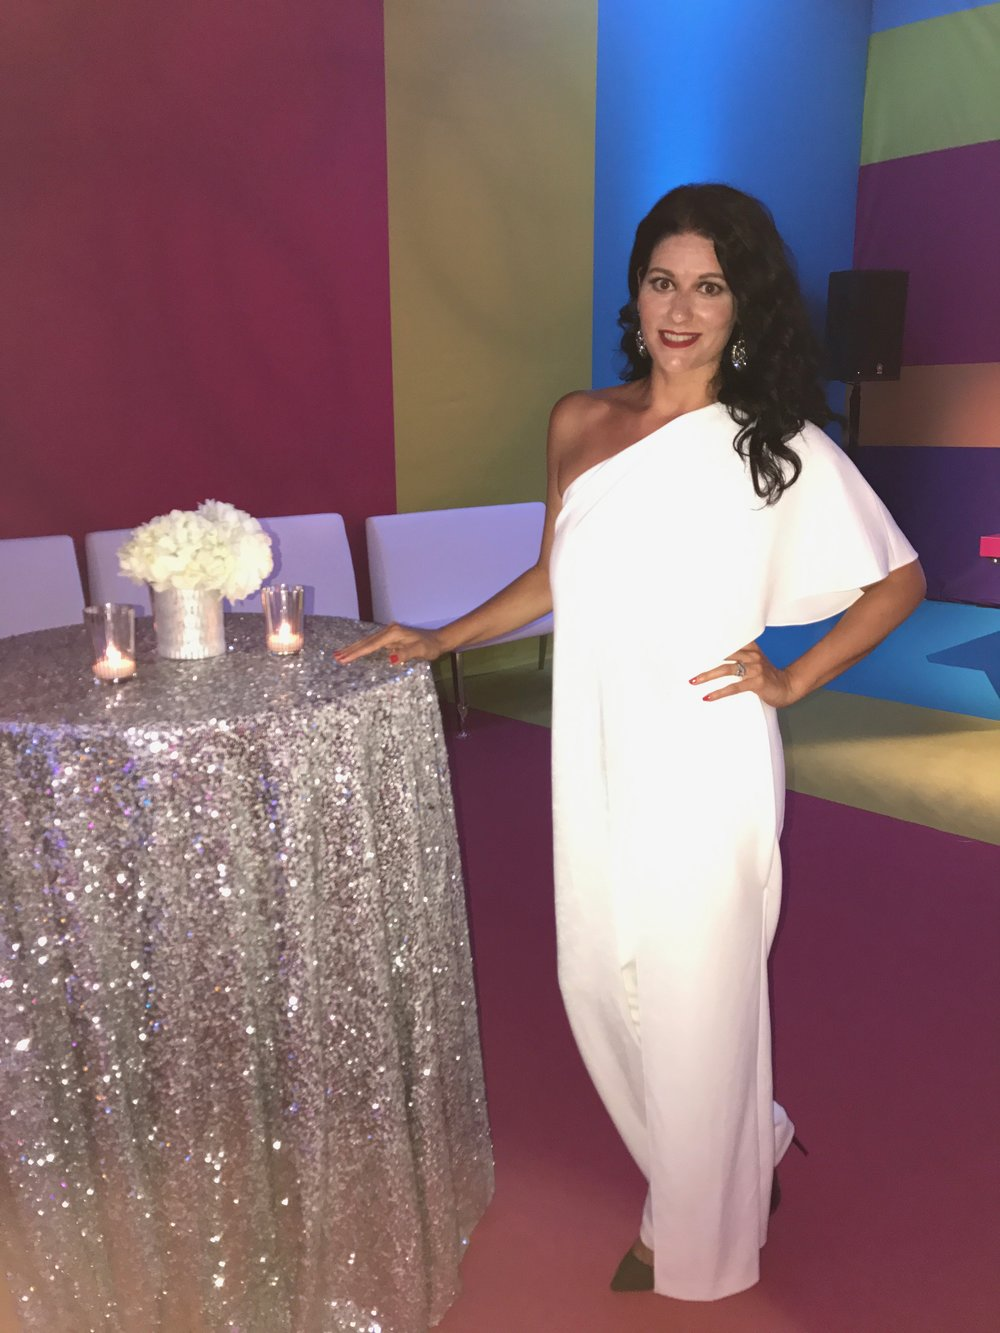 White Party! I loved every inch of that Jumpsuit!